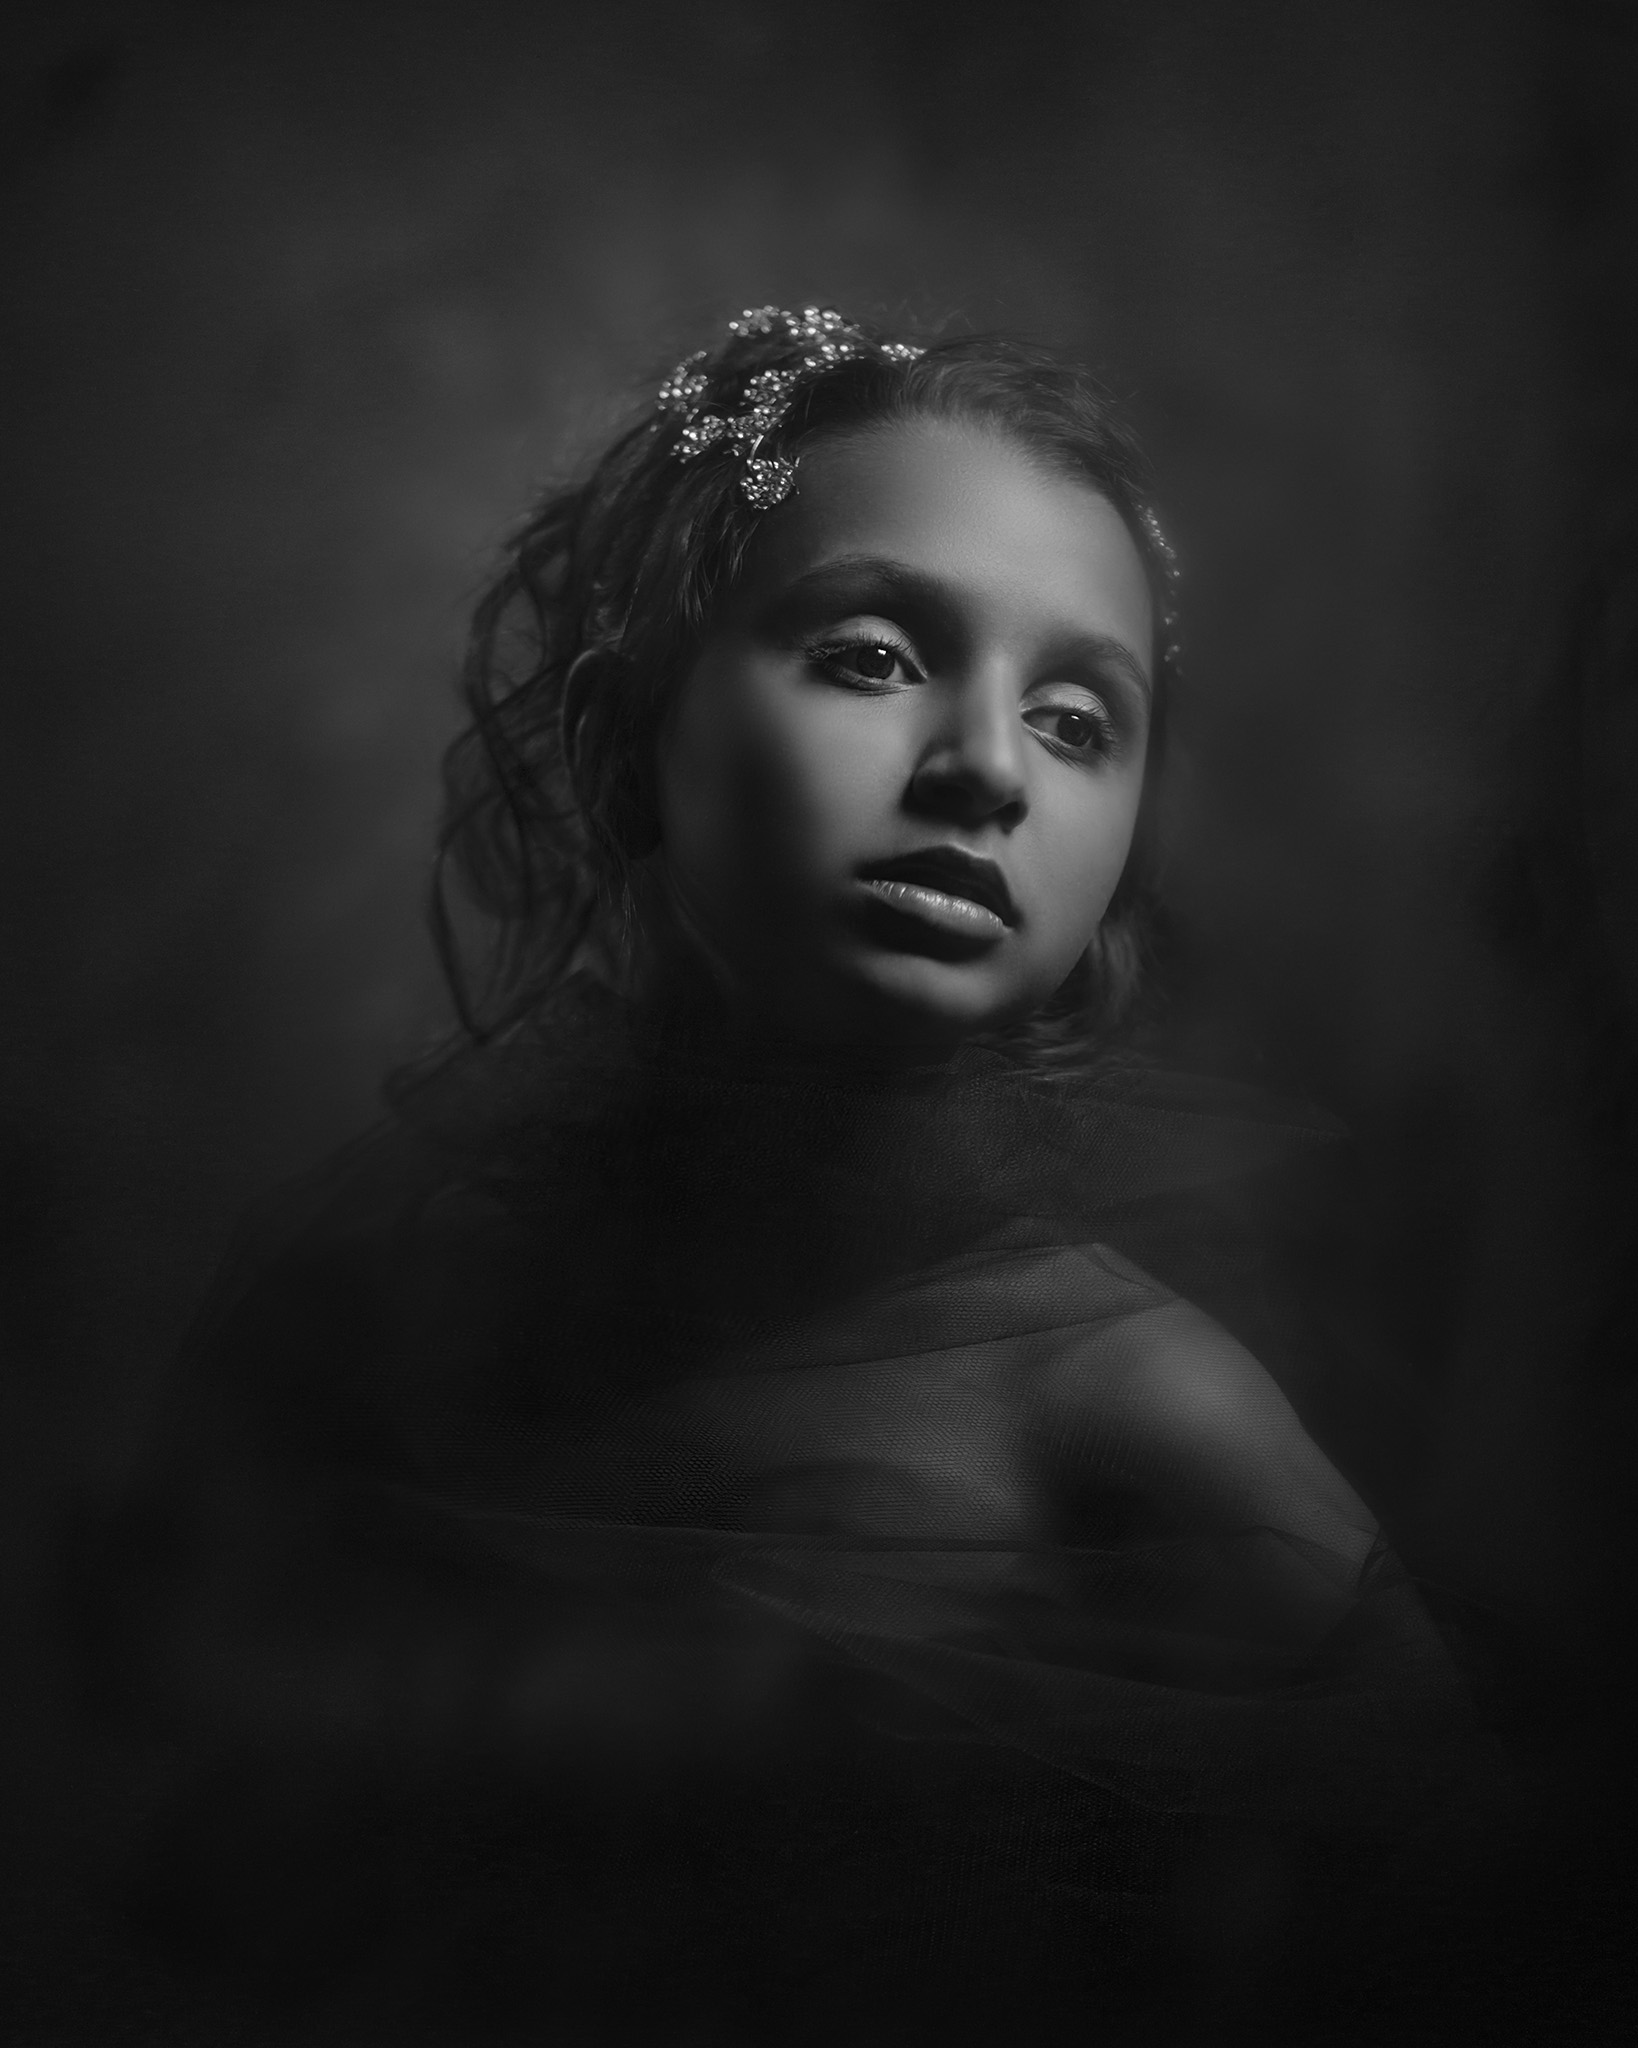 Tintype inspired black and white photo of a child by Melbourne portrait photographer Rocco Ancora